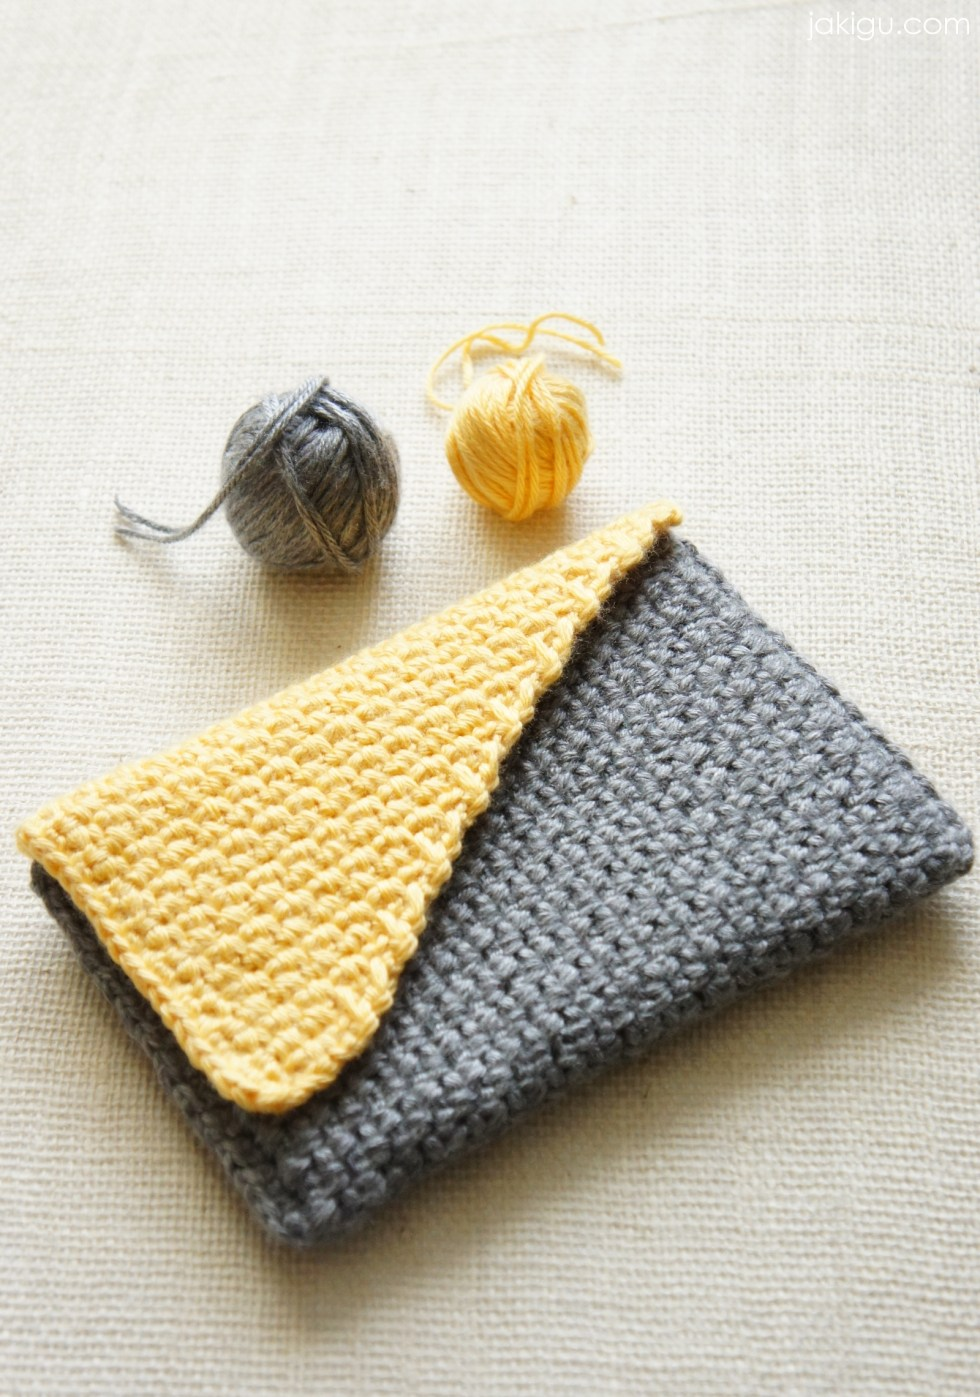 Colorblock crochet clutch by jakigu.com / crochet journal cover / crochet bag